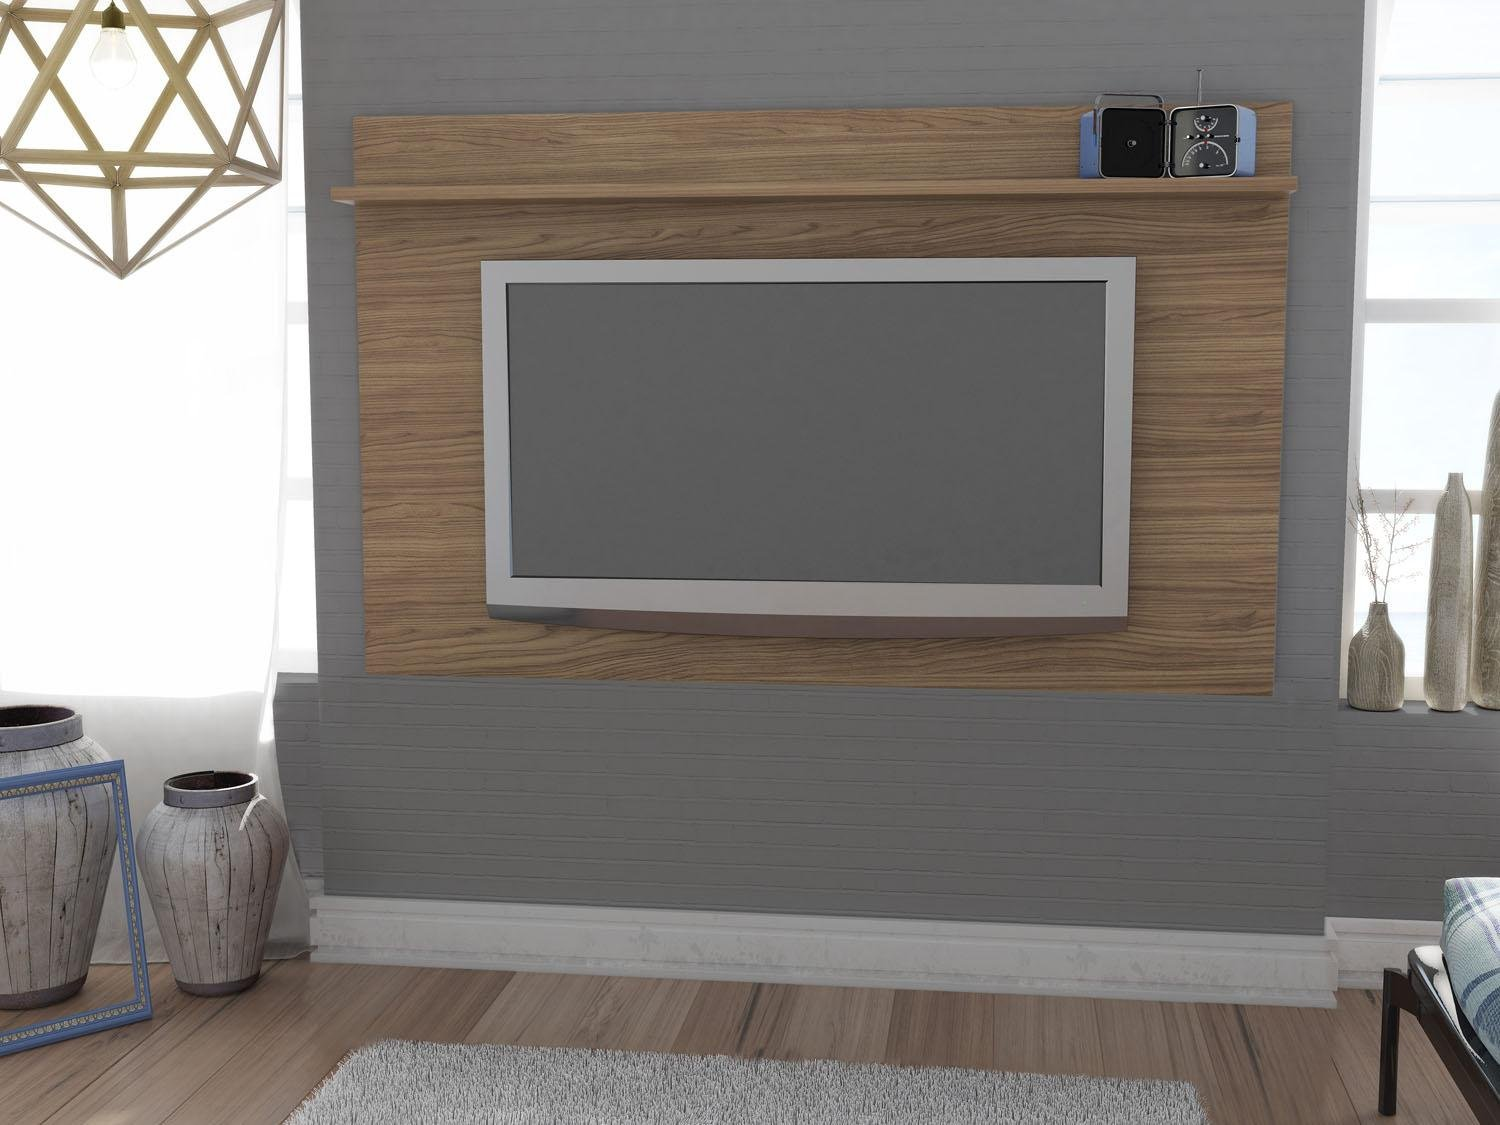 Painel Para Tv Bancada Suspensa Nadia Pictures to pin on Pinterest #465068 1500x1125